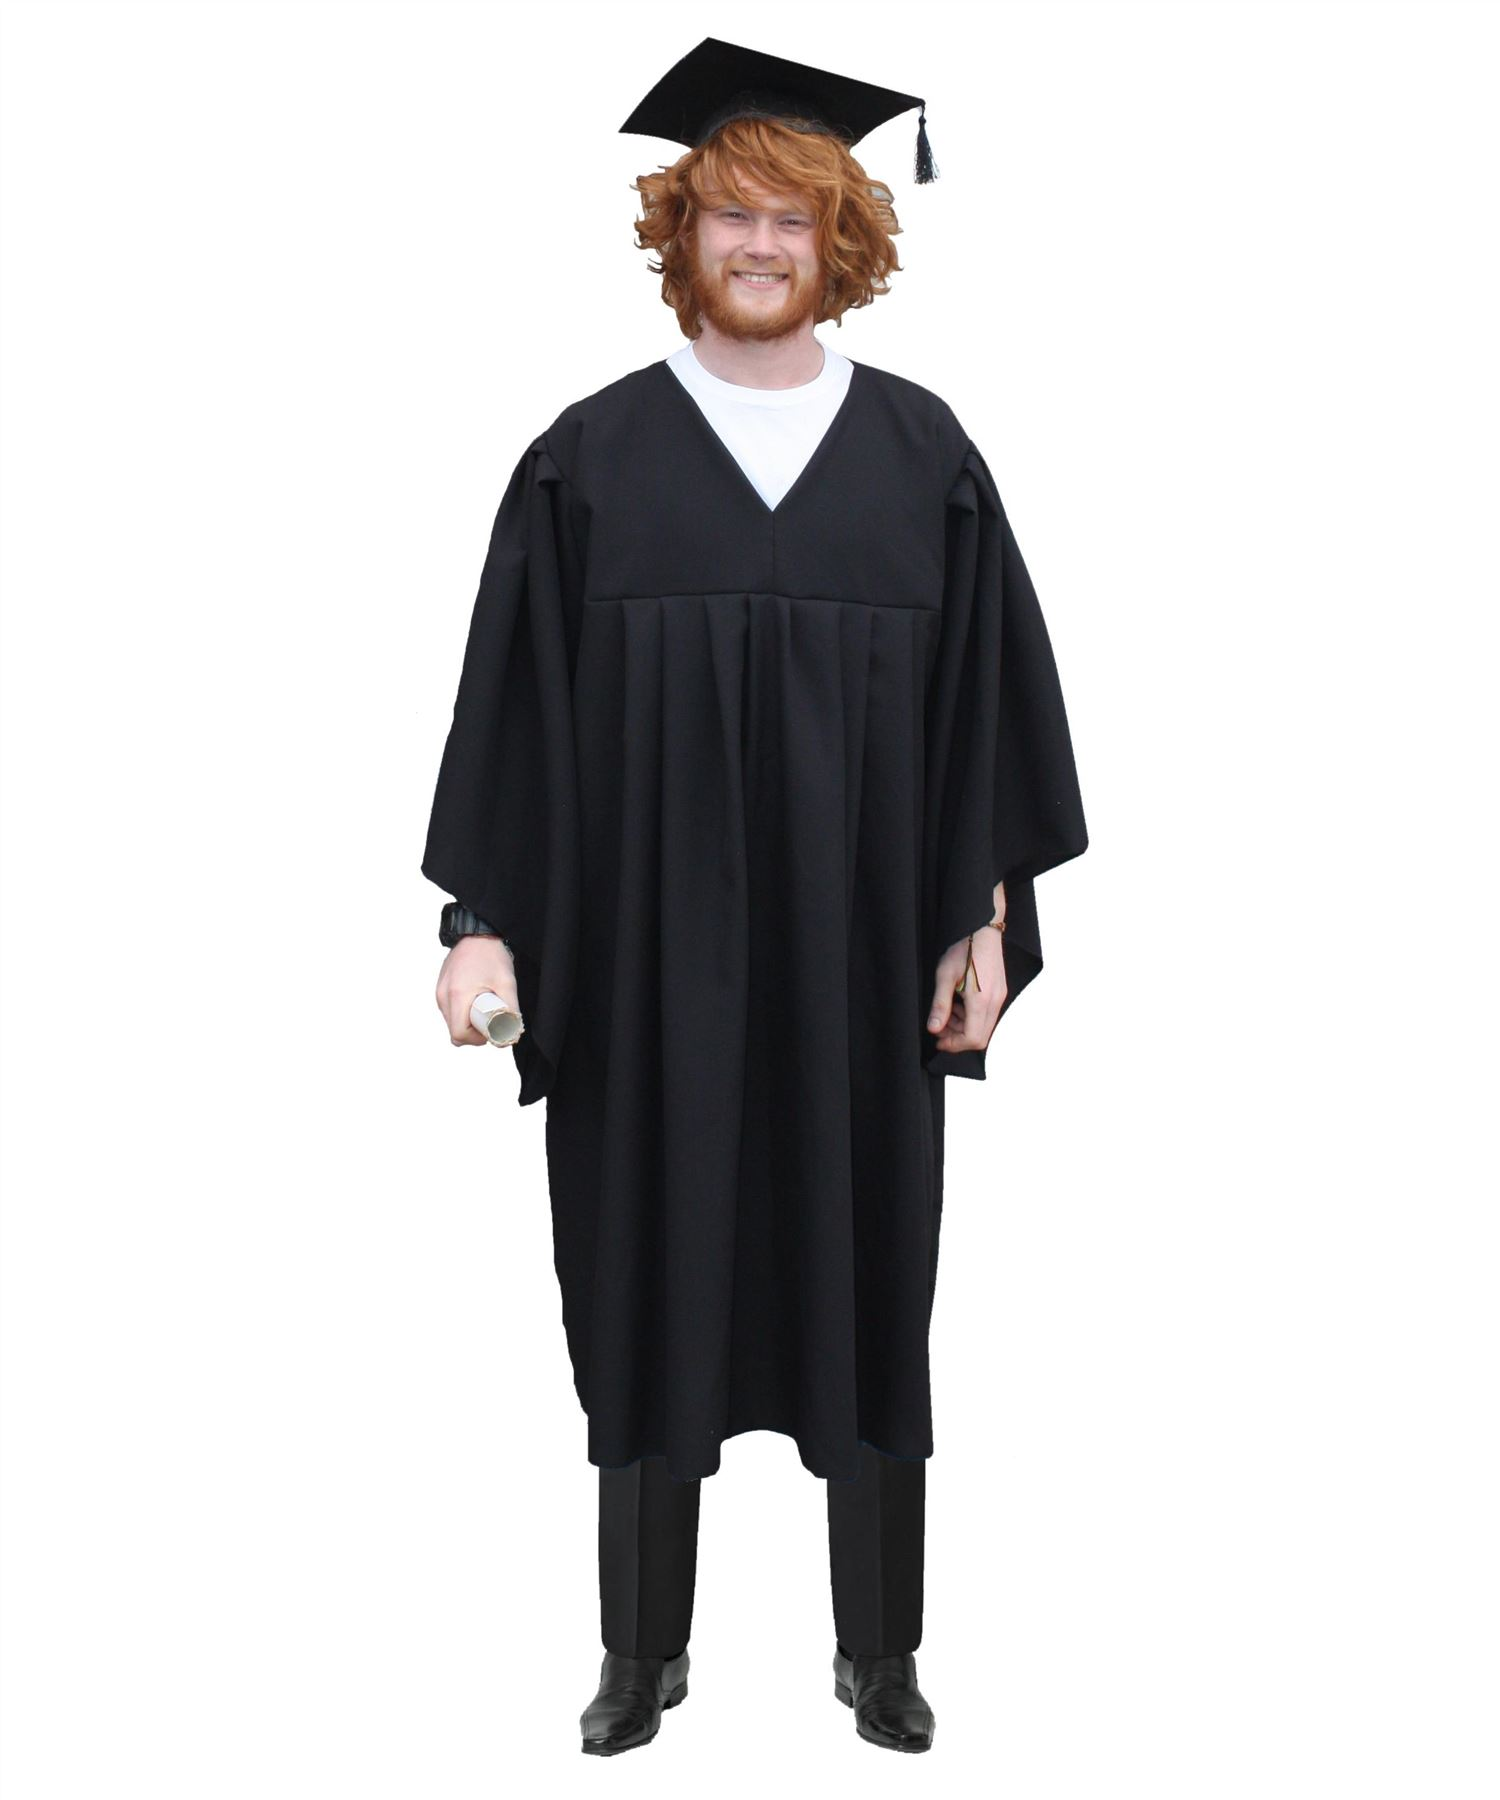 Adults Head Master Graduation Gown School Teacher Robes Fancy Dress Costume  sc 1 st  eBay & Adults Head Master Graduation Gown School Teacher Robes Fancy Dress ...